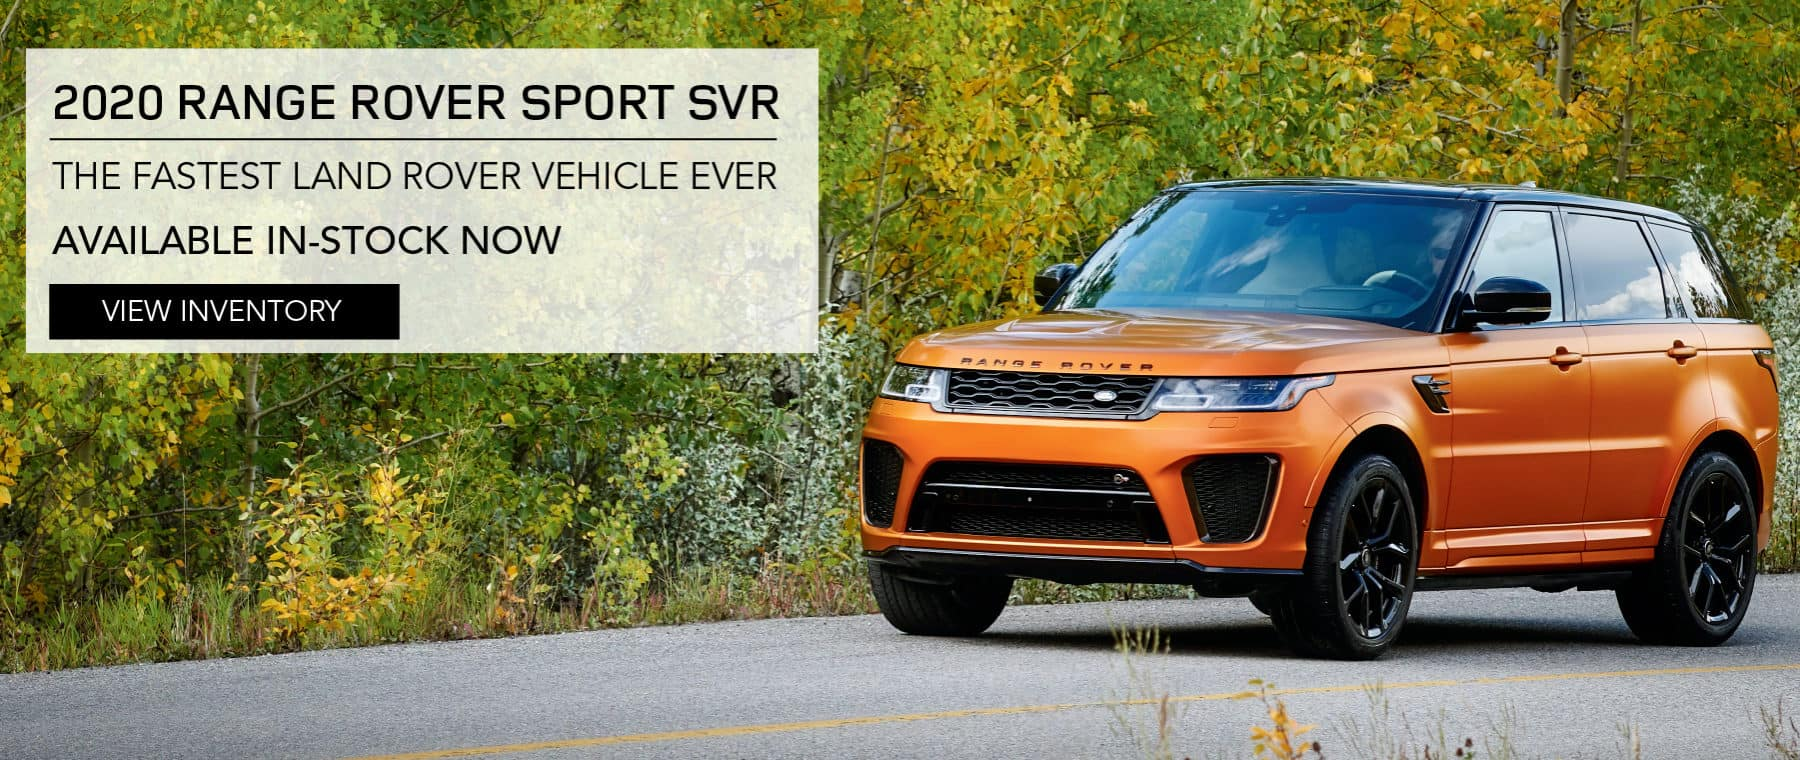 2020 RANGE ROVER SPORT SVR. THE FASTEST LAND ROVER VEHICLE EVER AVAILABLE IN-STOCK NOW. VIEW INVENTORY. ORANGE RANGE ROVER SPORT DRIVING DOWN ROAD IN COUNTRYSIDE.